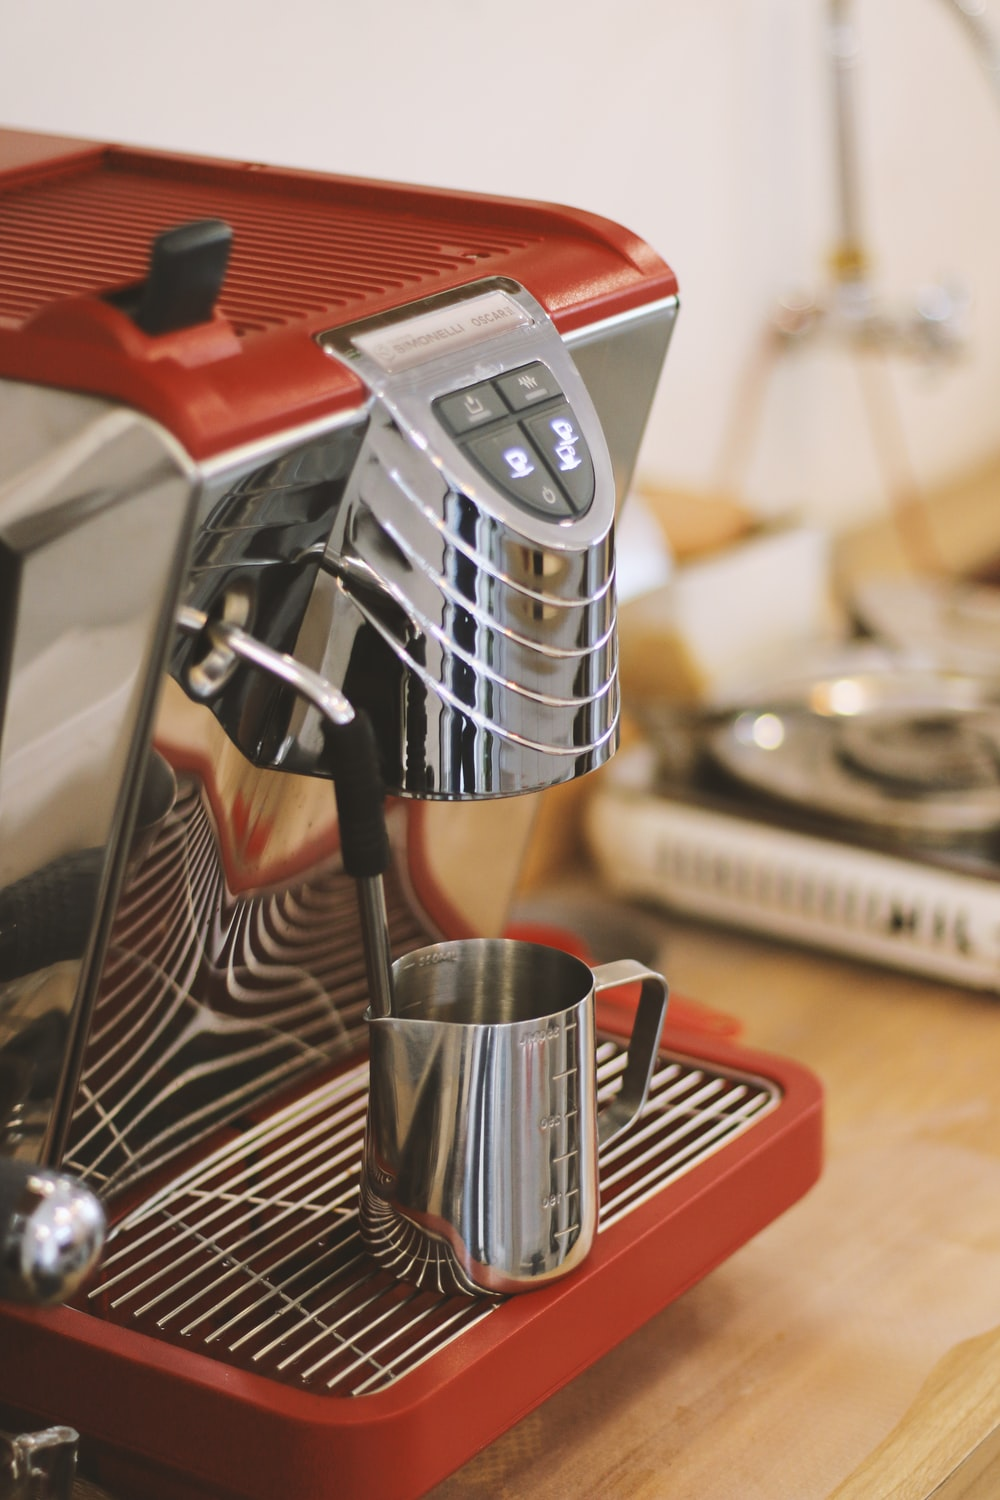 cup near red and gray stainless steel coffee maker